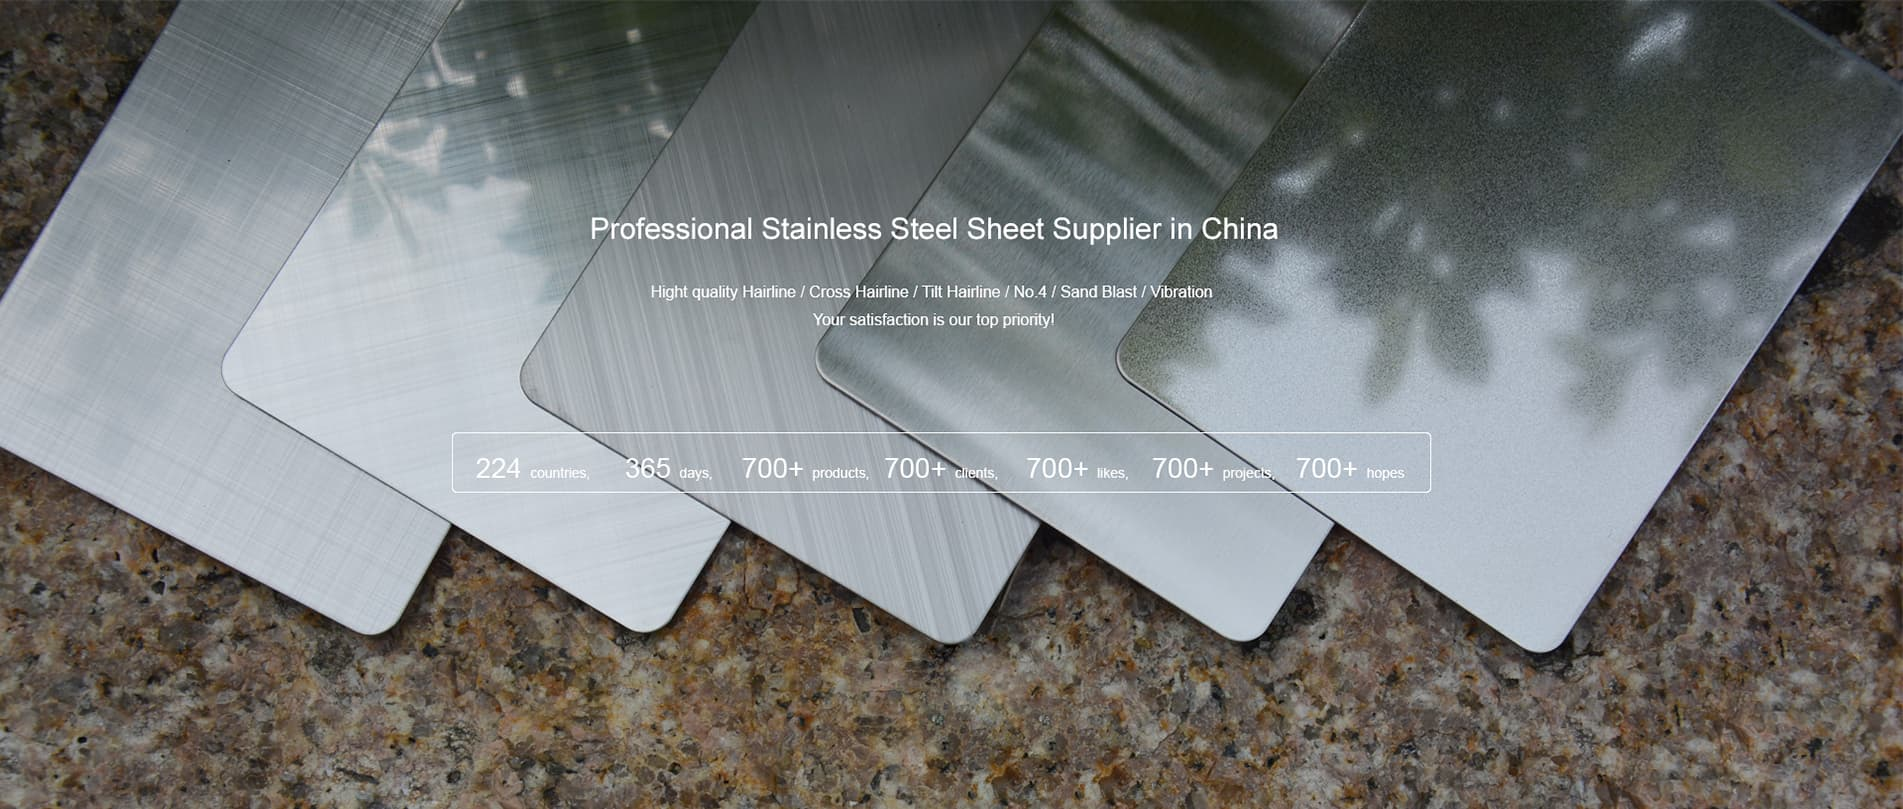 Goldeco Stainless Steel Sheet Web Banner 1-2